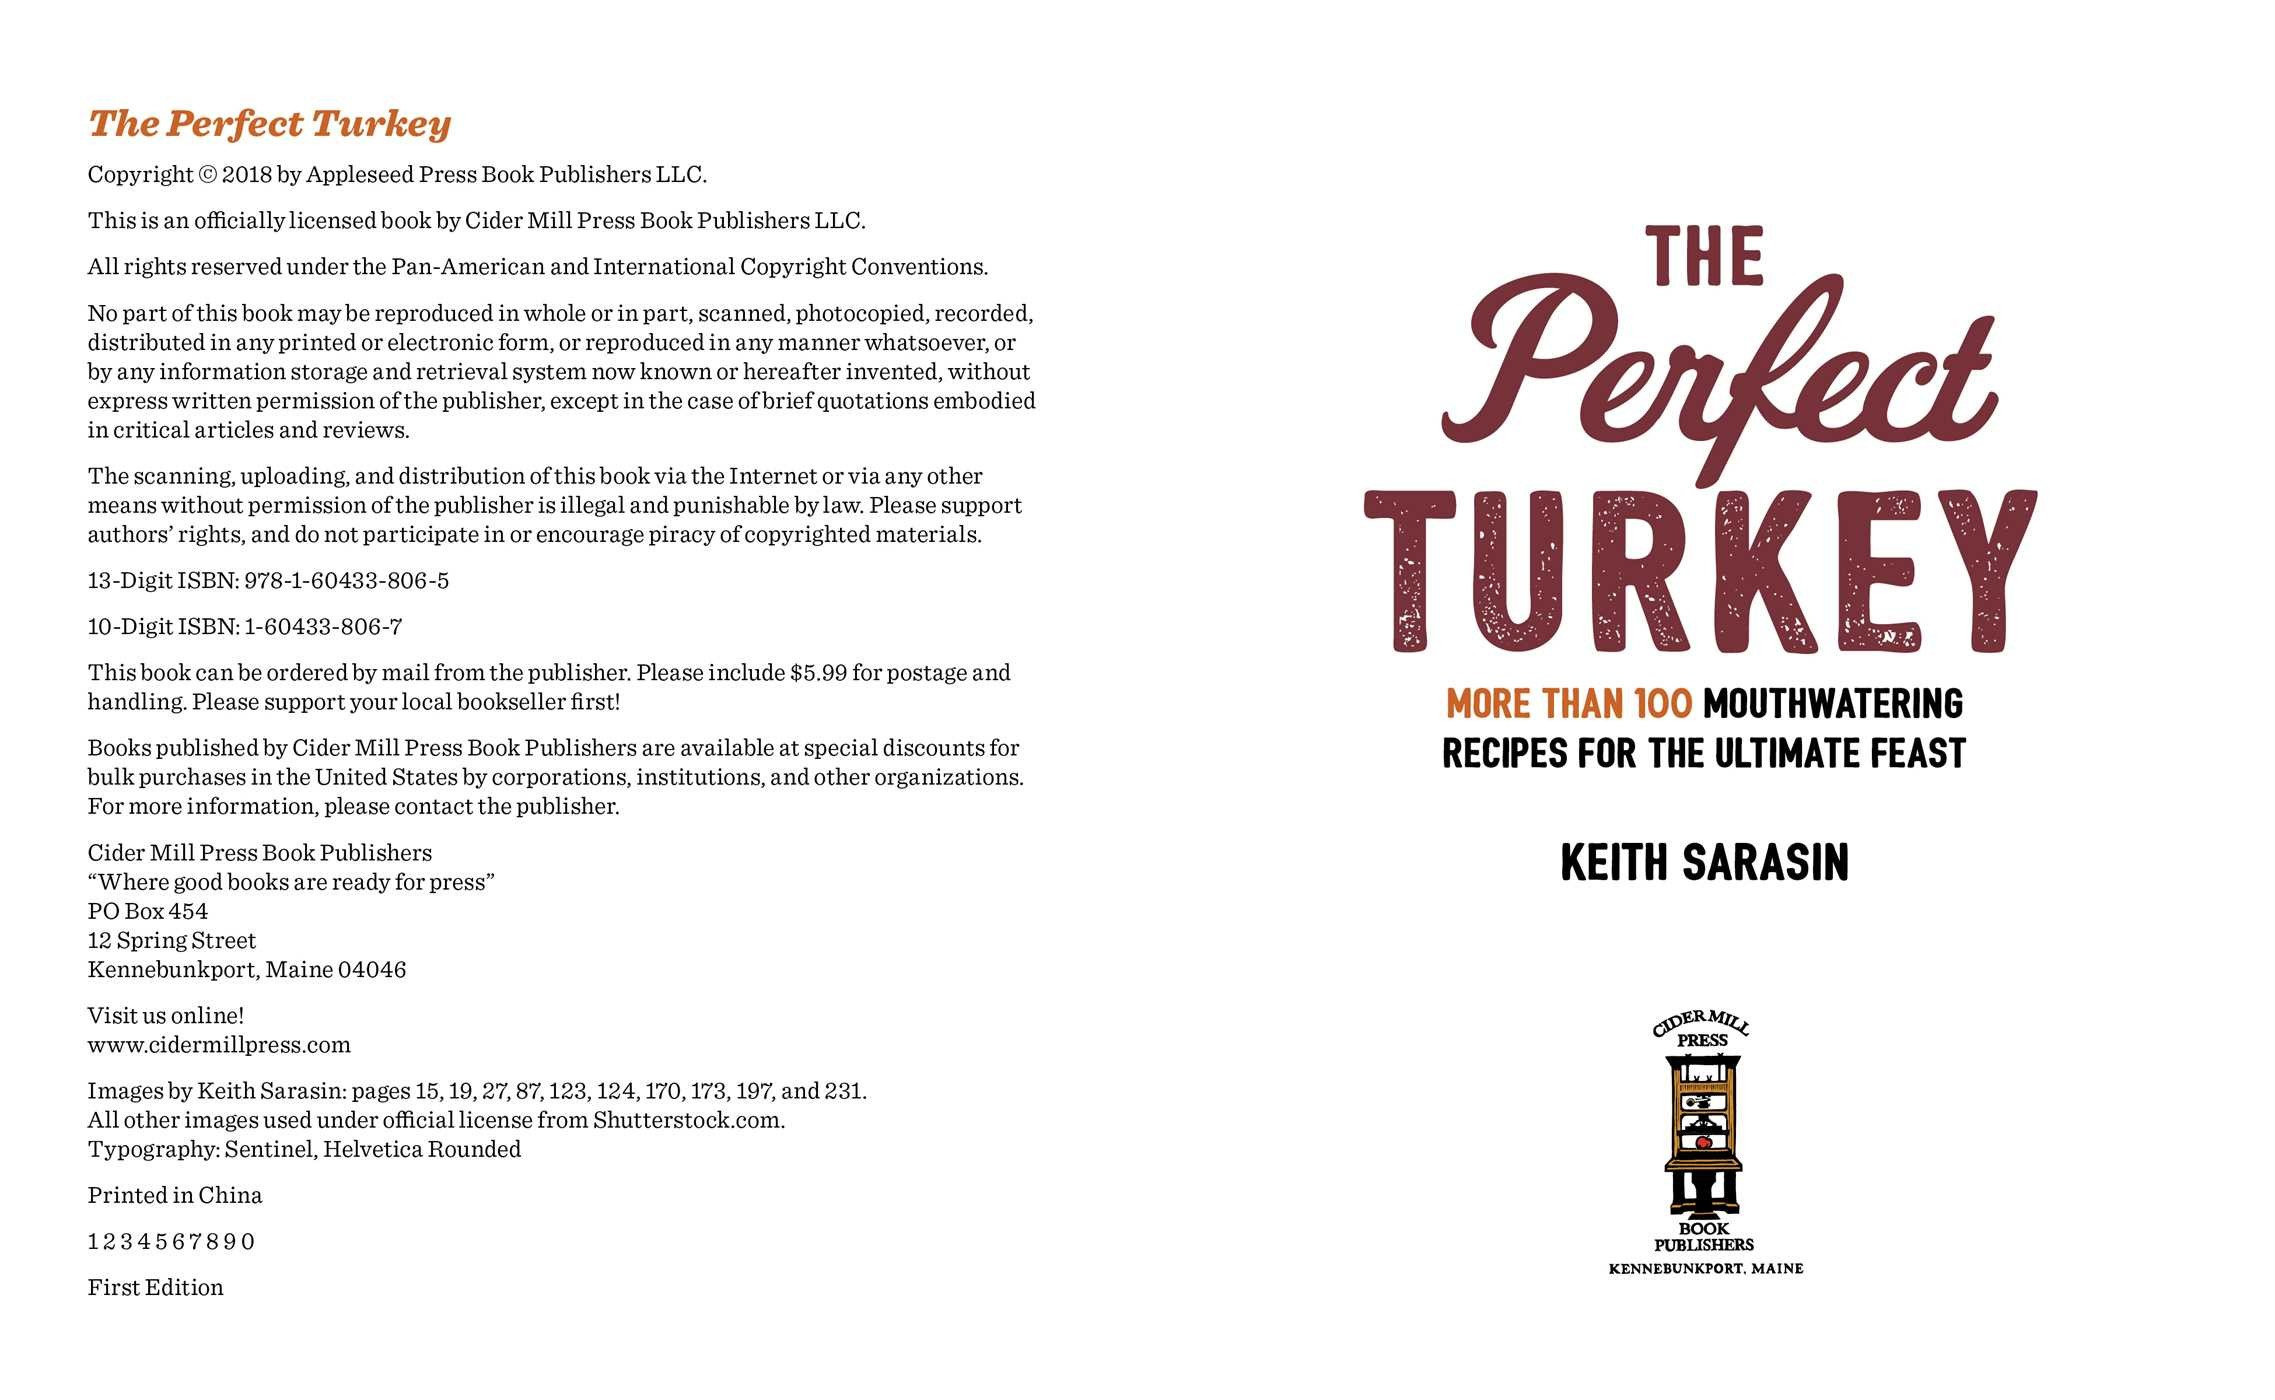 Perfect turkey cookbook 9781604338065.in01